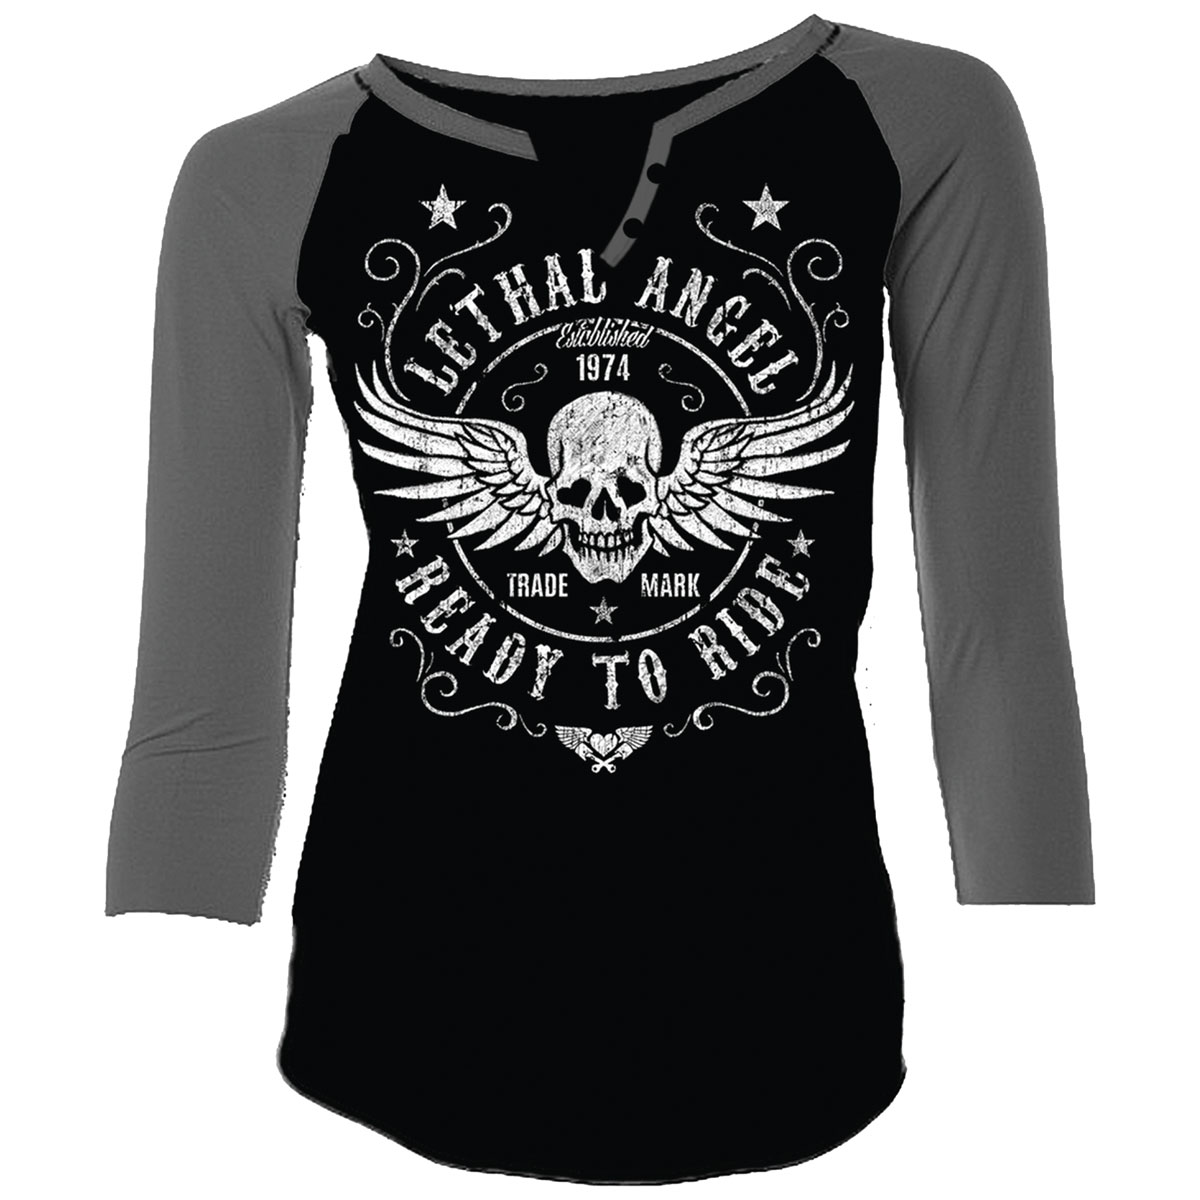 Lethal Angel Women's Ready to Ride Curvy Black/Gray Baseball Tee